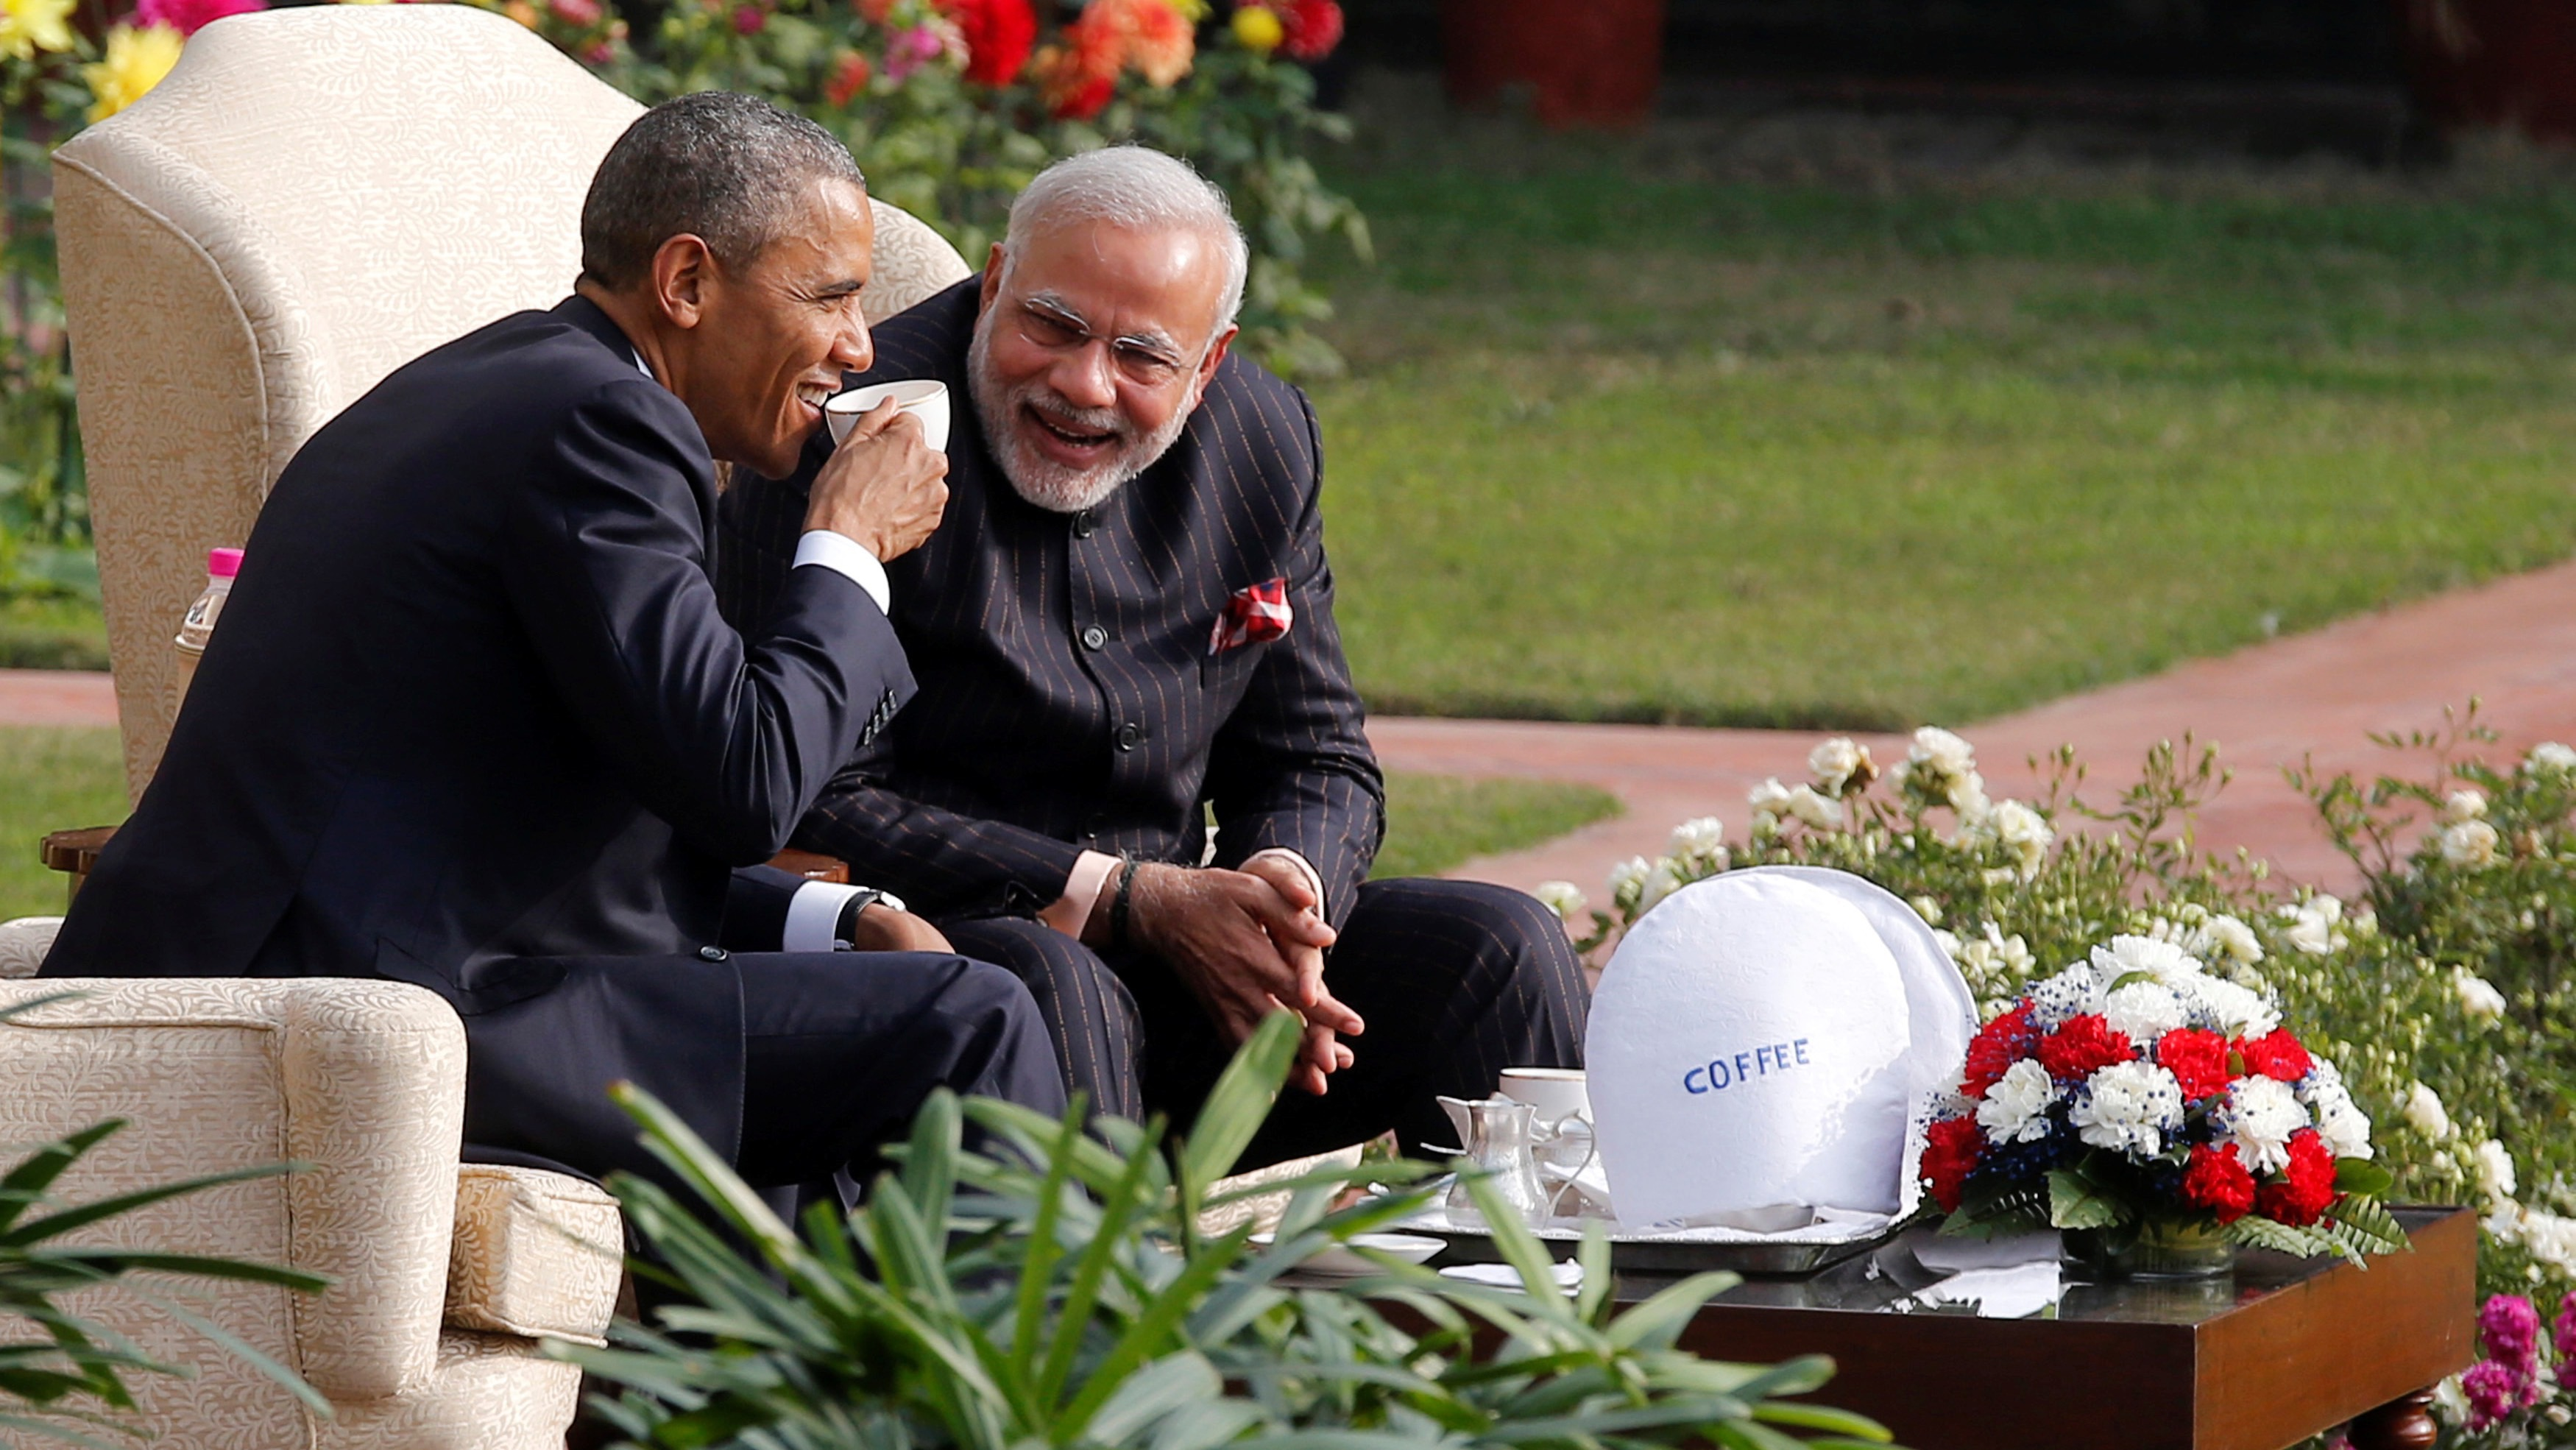 U.S. President Barack Obama and India's Prime Minister Narendra Modi (R) talk as they have coffee and tea together in the gardens of Hyderabad House in New Delhi January 25, 2015.